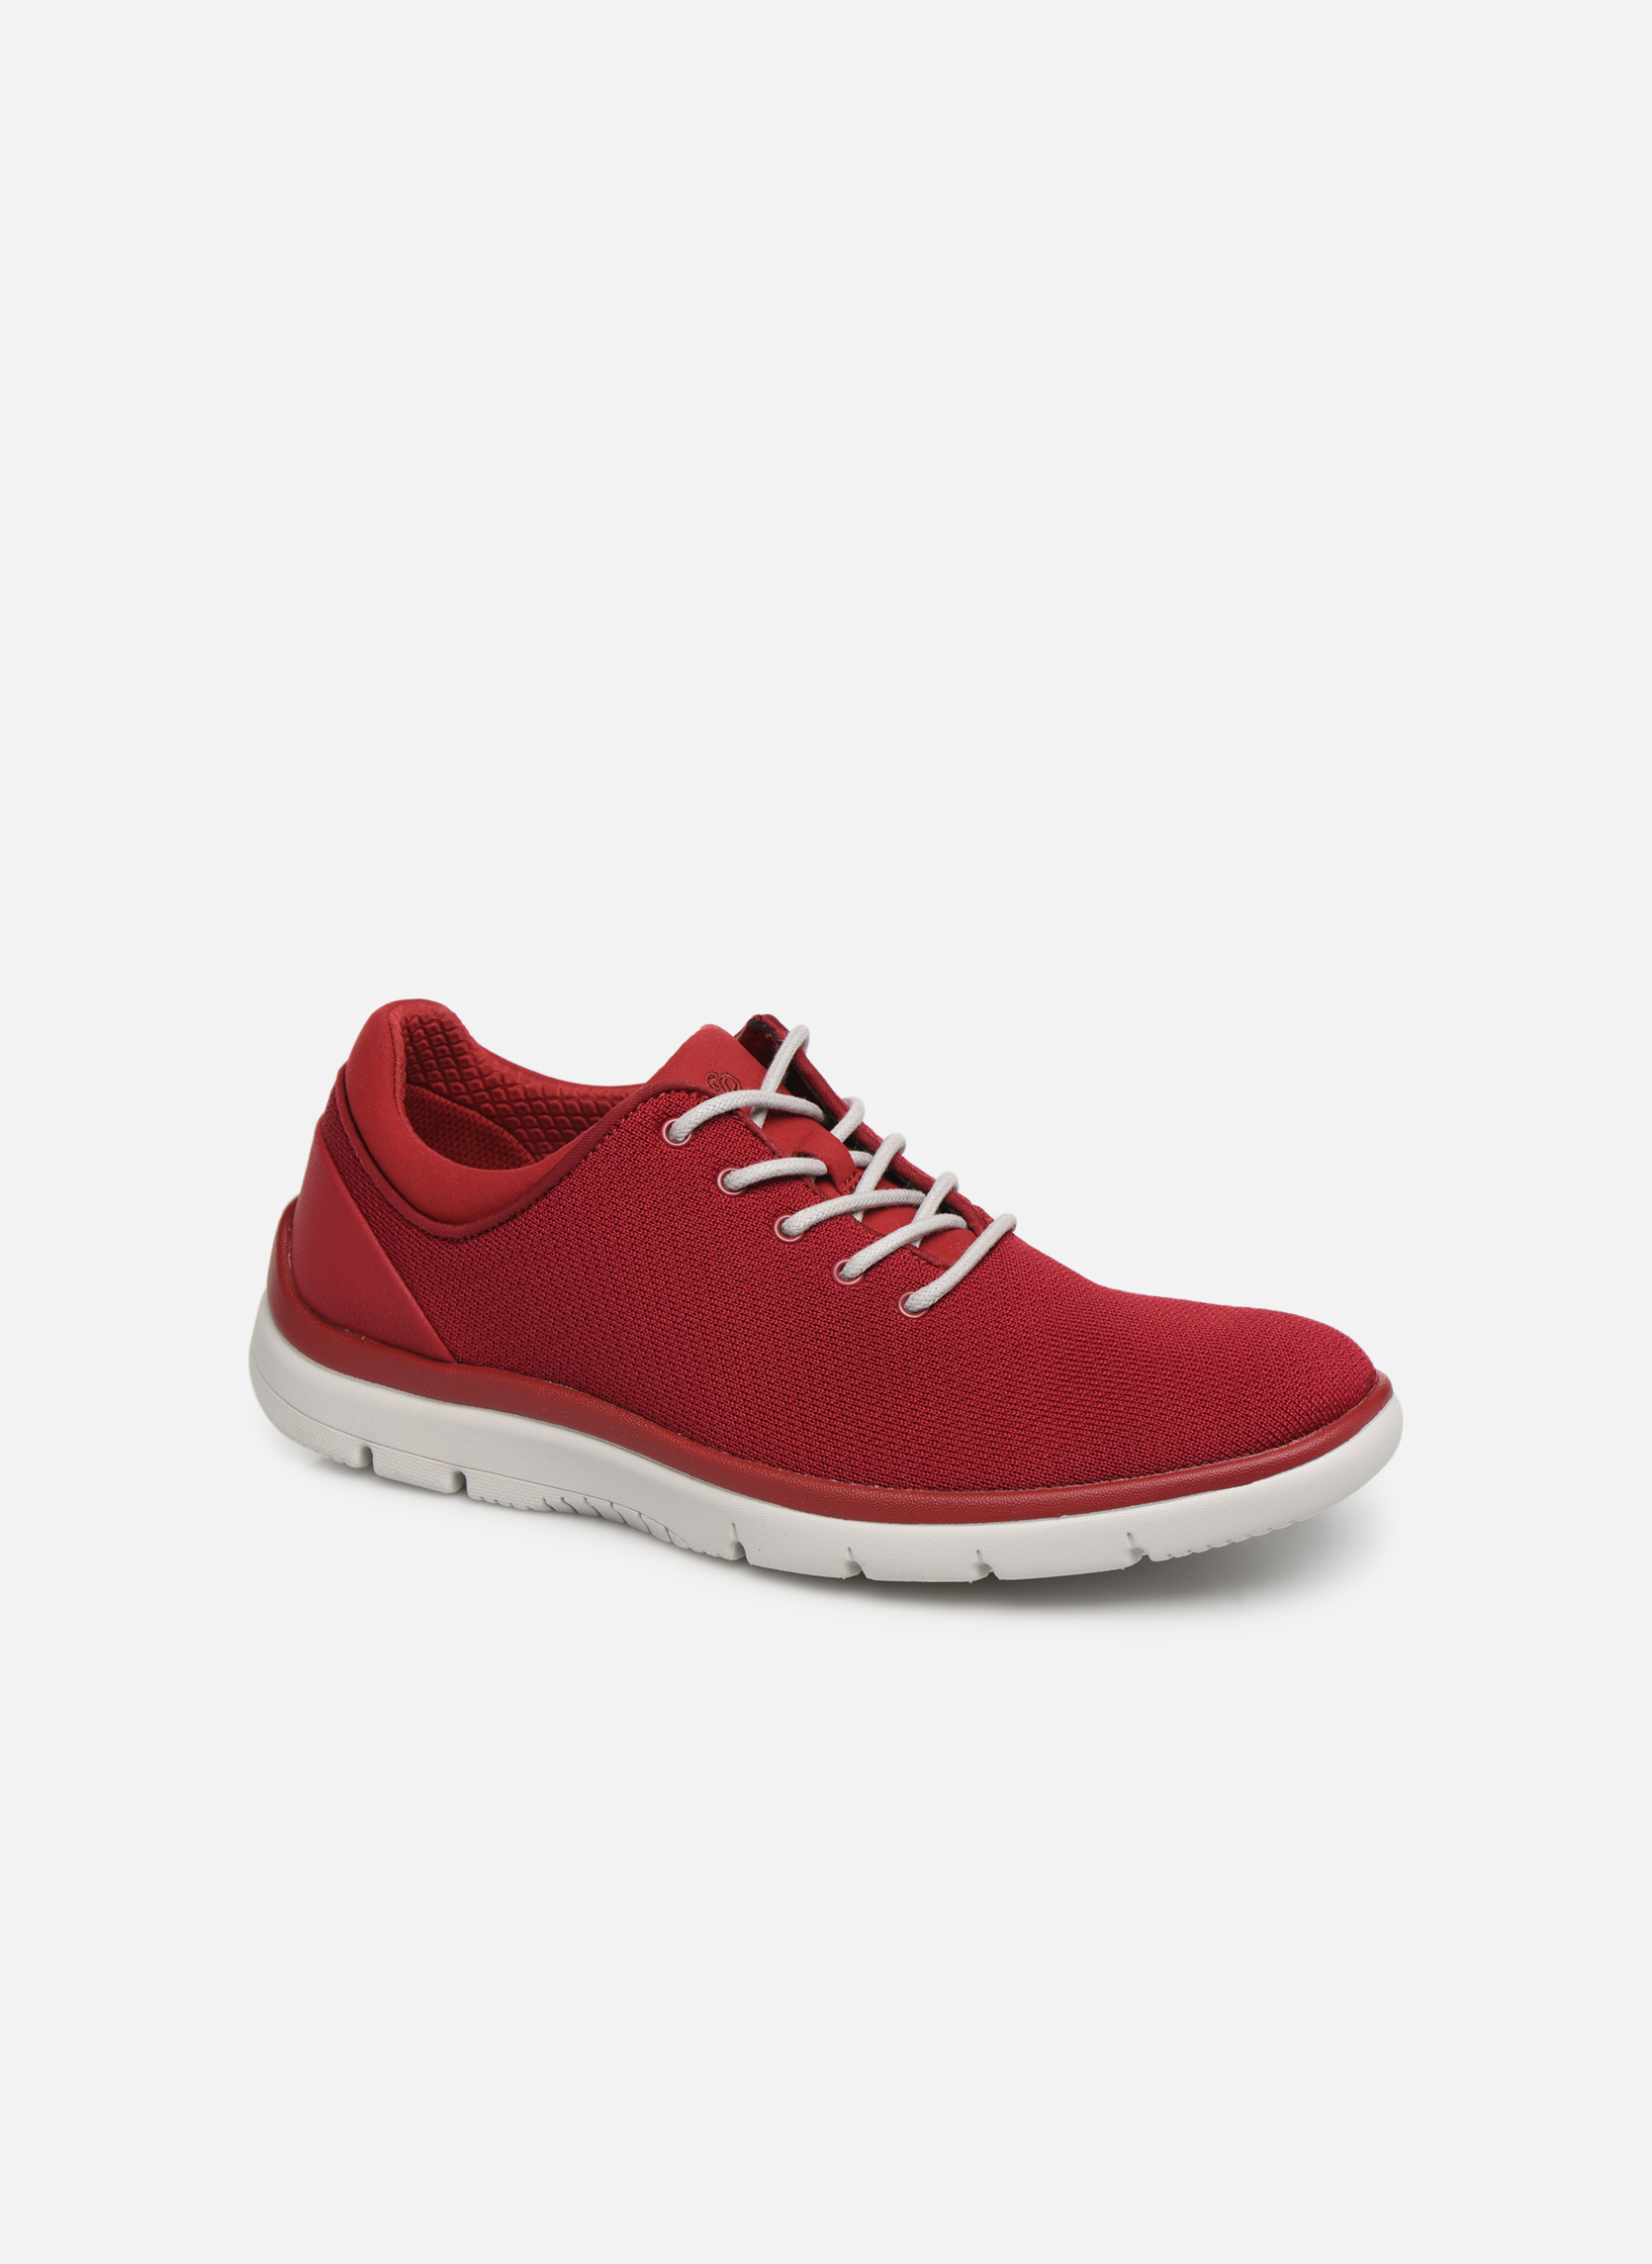 Sneakers Cloudsteppers by Clarks Rood